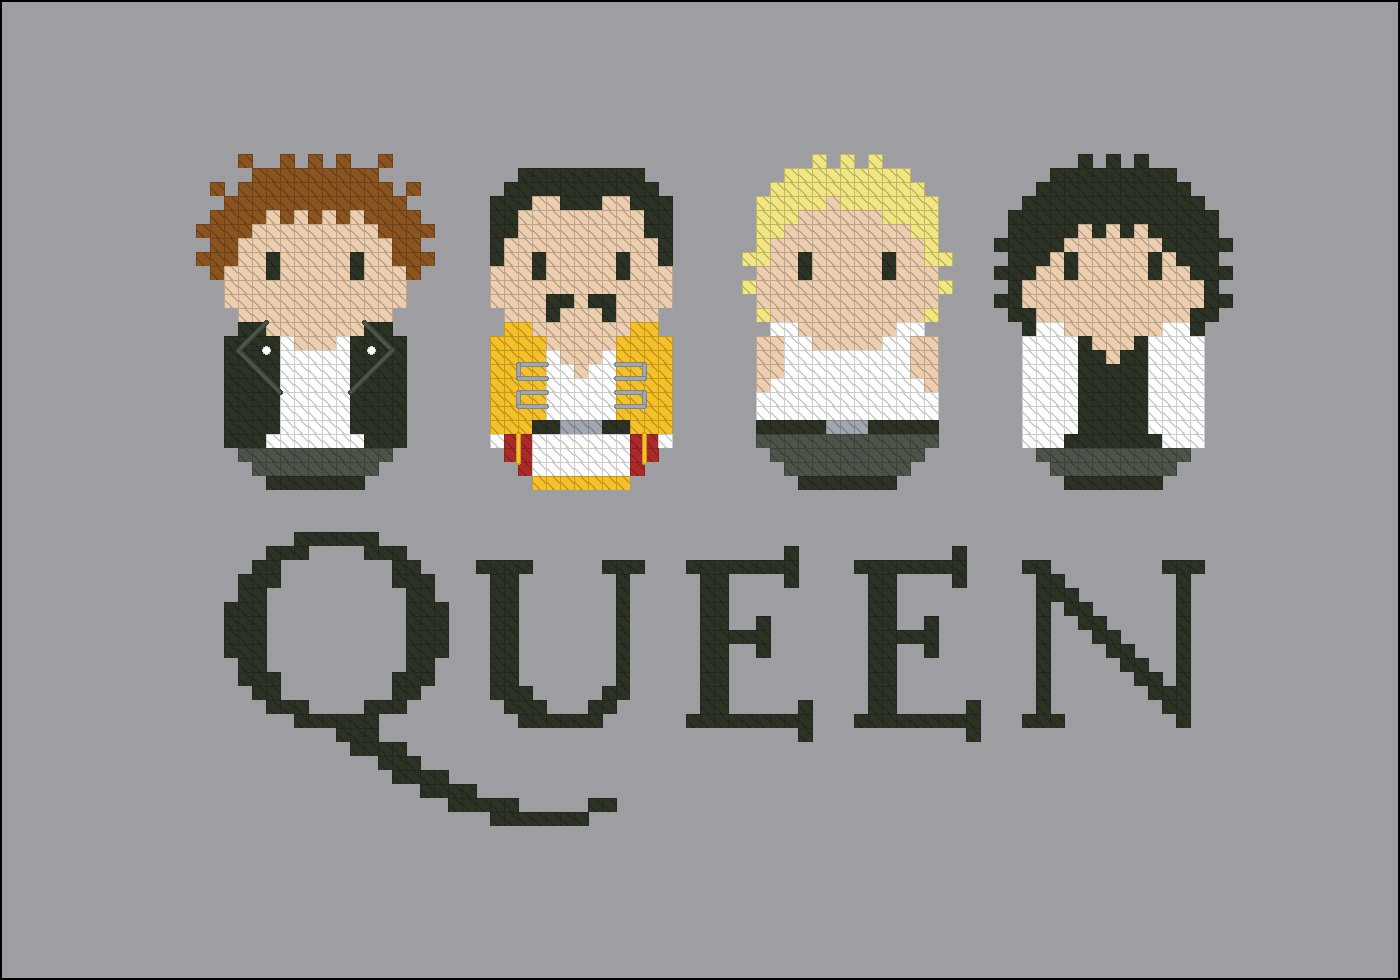 Queen rock band - Digital Cross Stitch Pattern